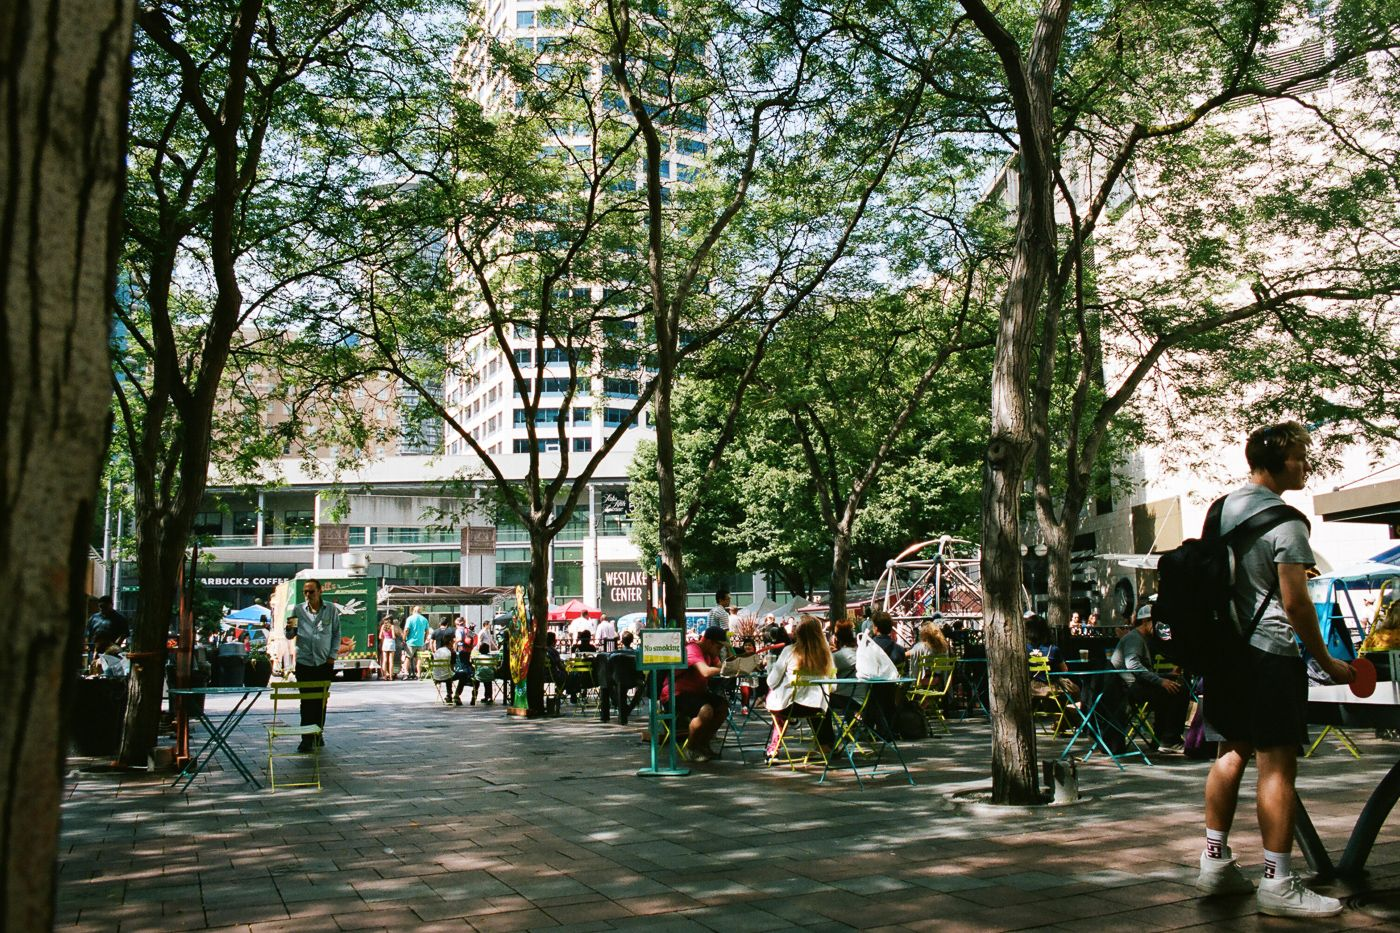 A public space with tables and chairs, where many people are spending time under the shade of trees.